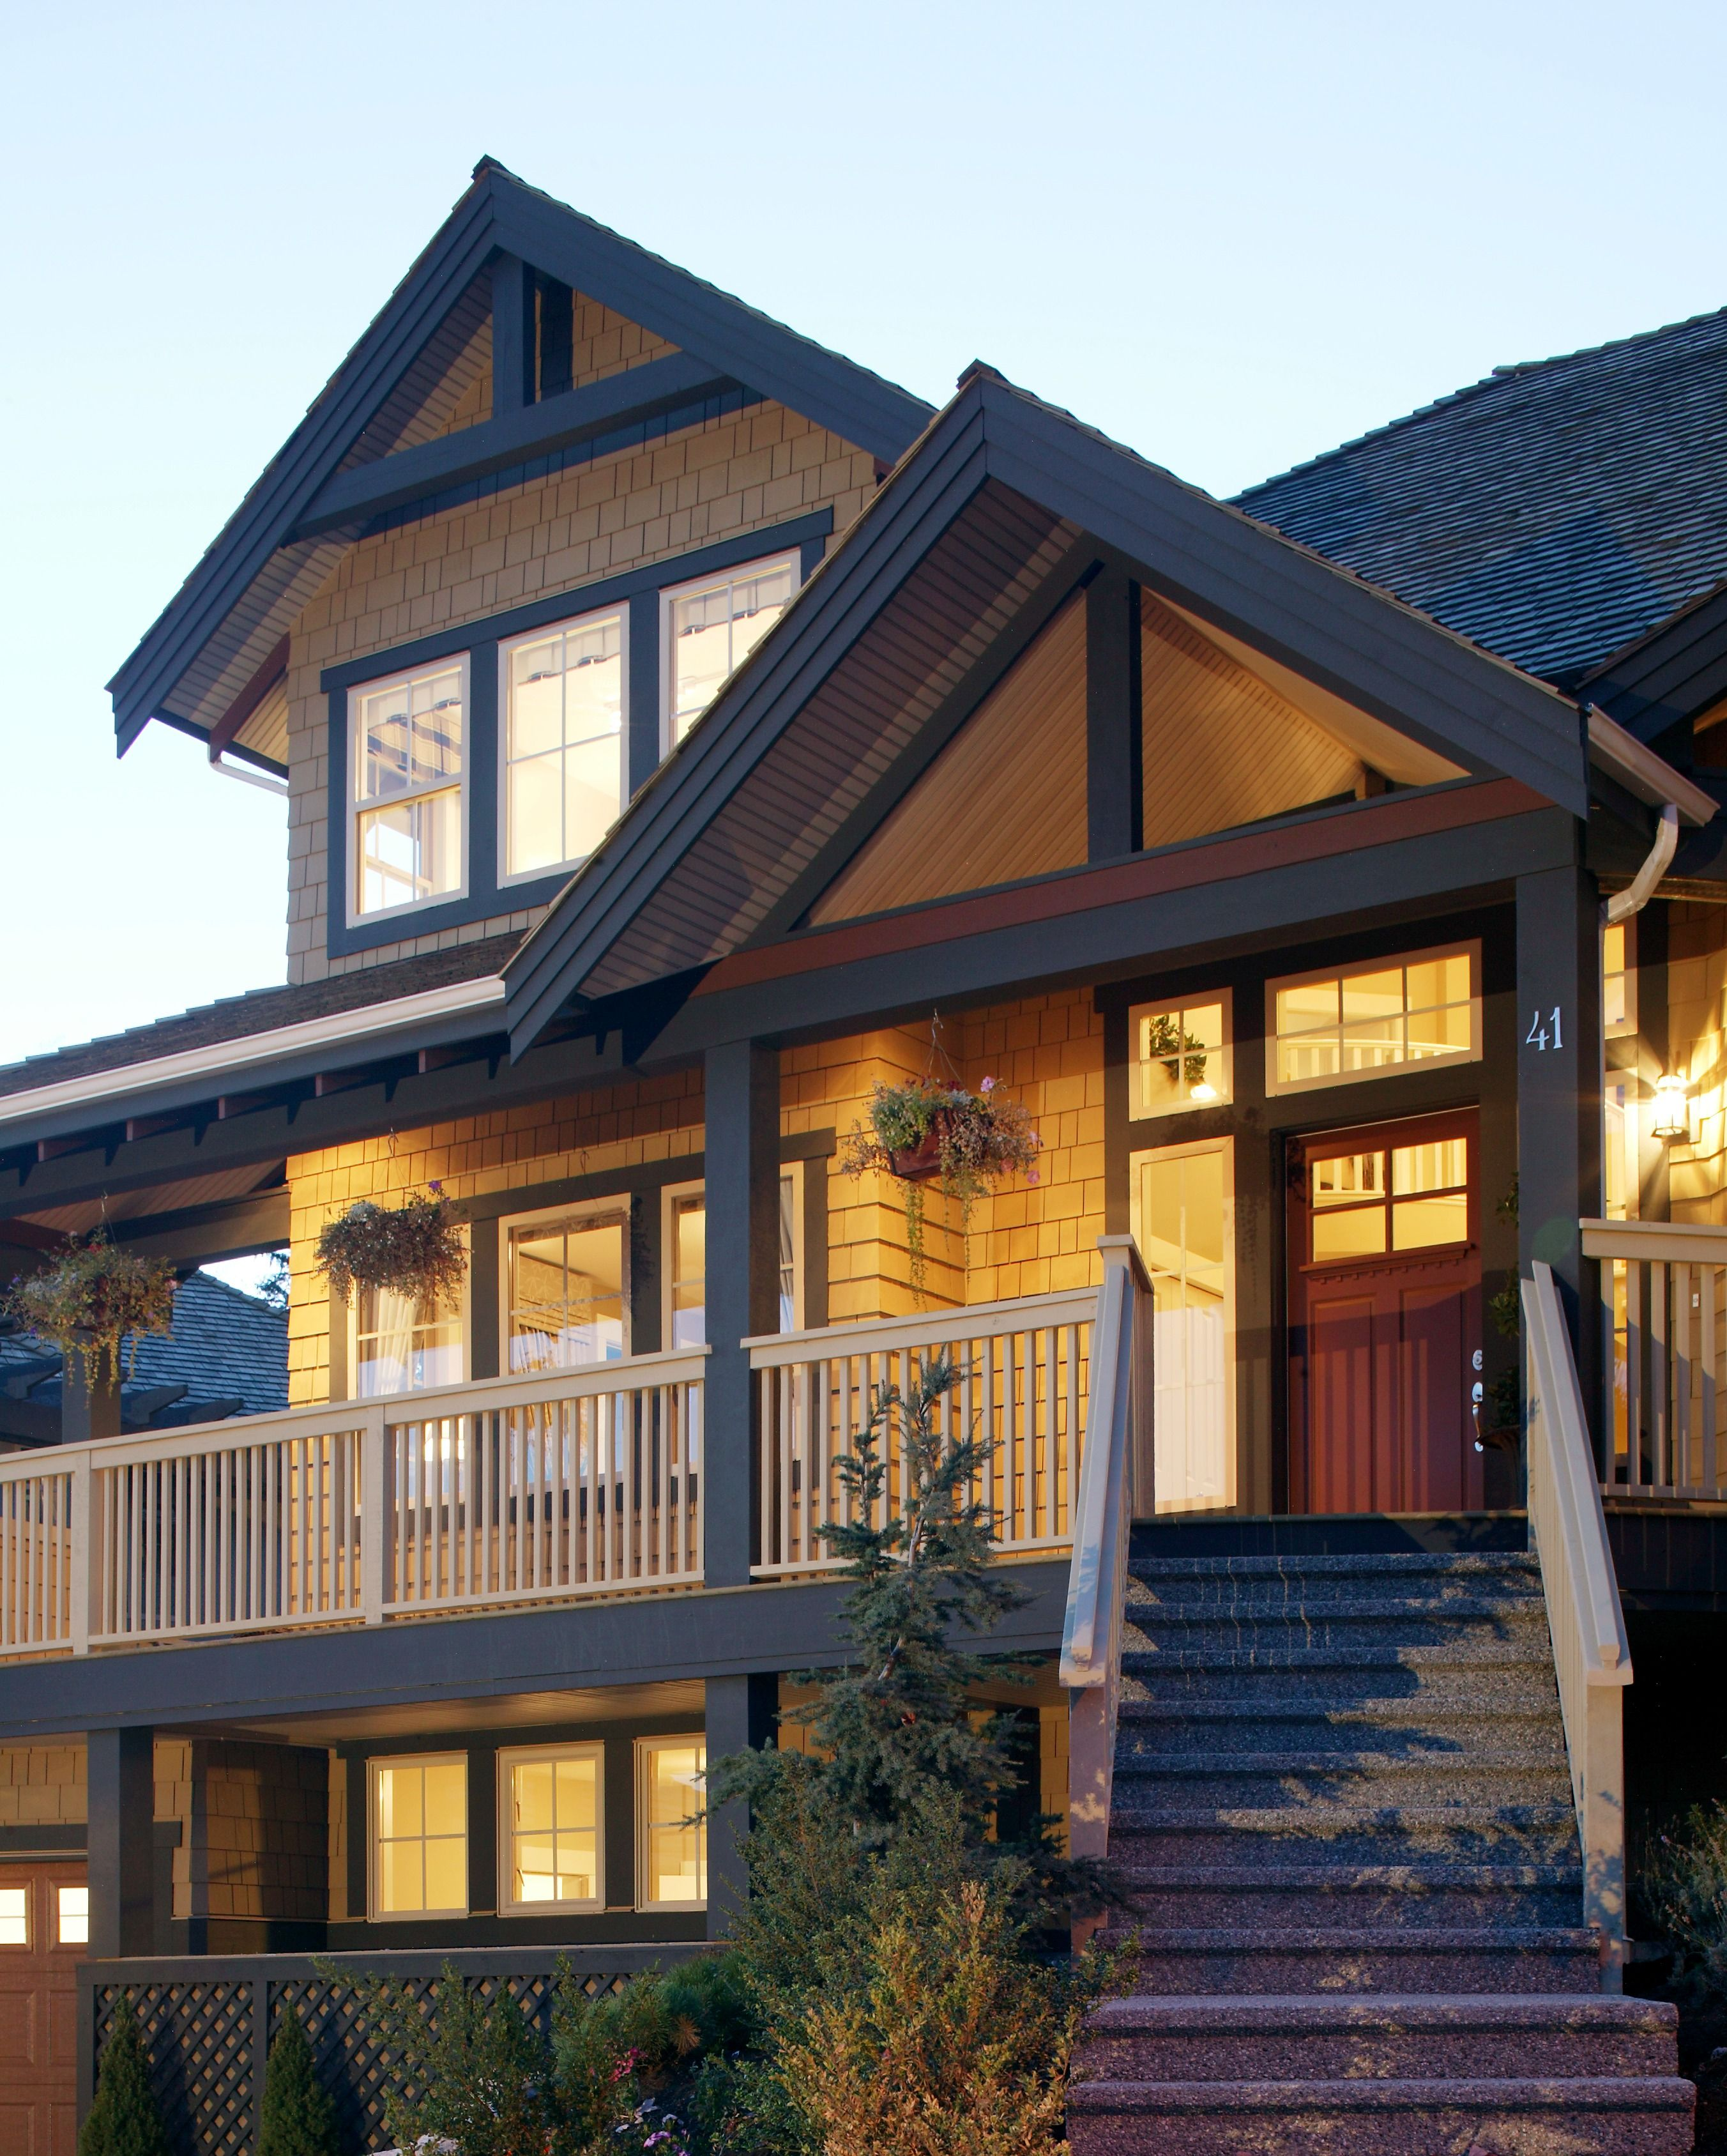 Three-story Home With A Very Large Porch, Wood Shingle